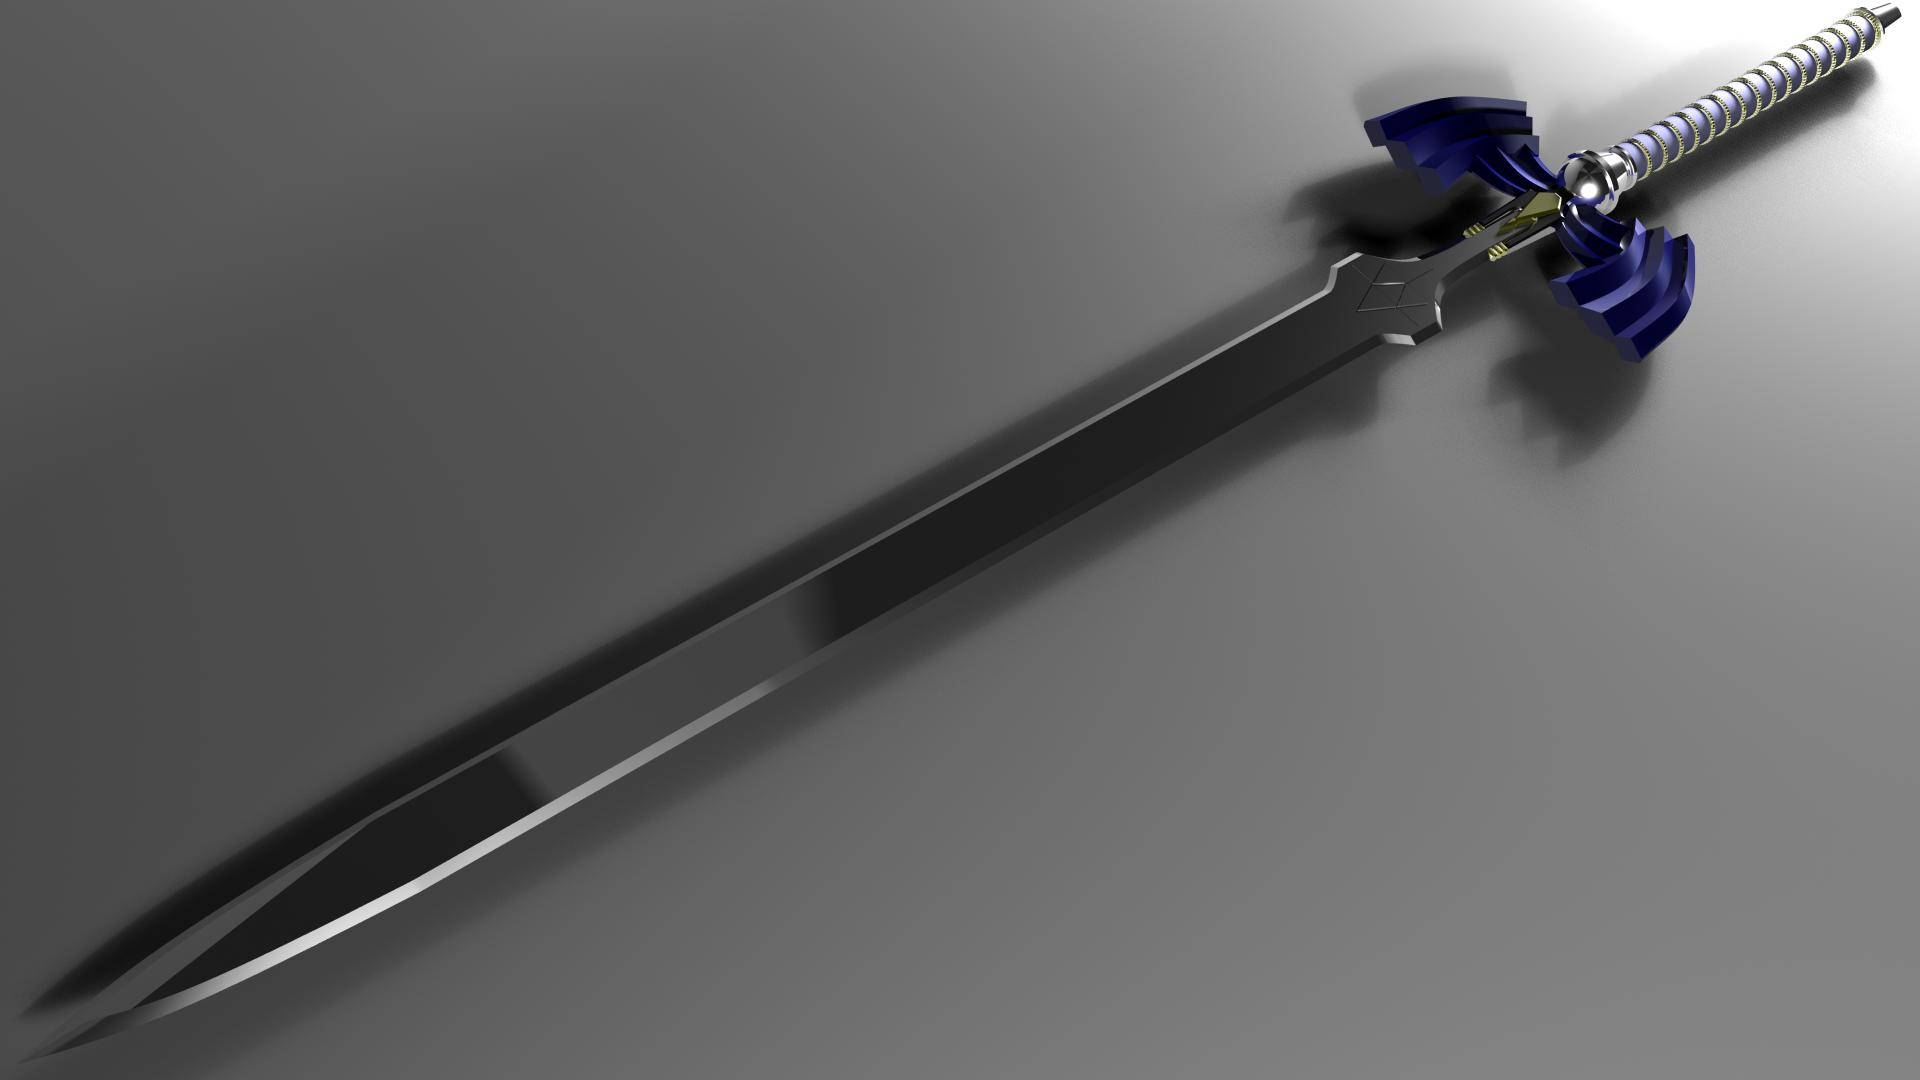 pics of sword